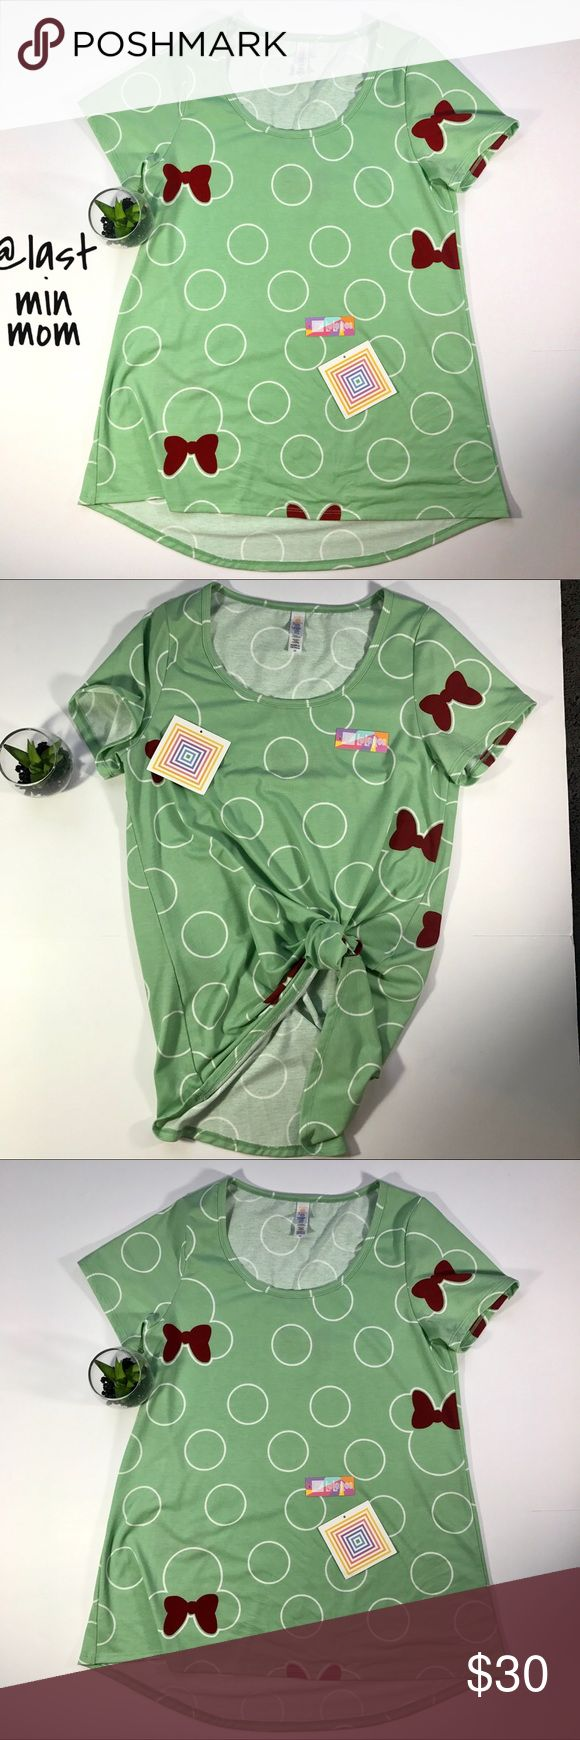 ‼️LULAROE ‼️DISNEY‼️ CLASSIC TEE‼️ Lularoe Disney Classic Tee  Size XS  Brand New w detached tags. Mint green w Burgundy Bows and White polka dots!!! Adorable!!!!! Perfect for any Disney and Lularoe Fan!  27' length in back  25' length in front Bust 32' Perfect w leggings or jeans. Super comfy and soft.  Cute short sleeves. LULAROE Tops Tees - Short Sleeve